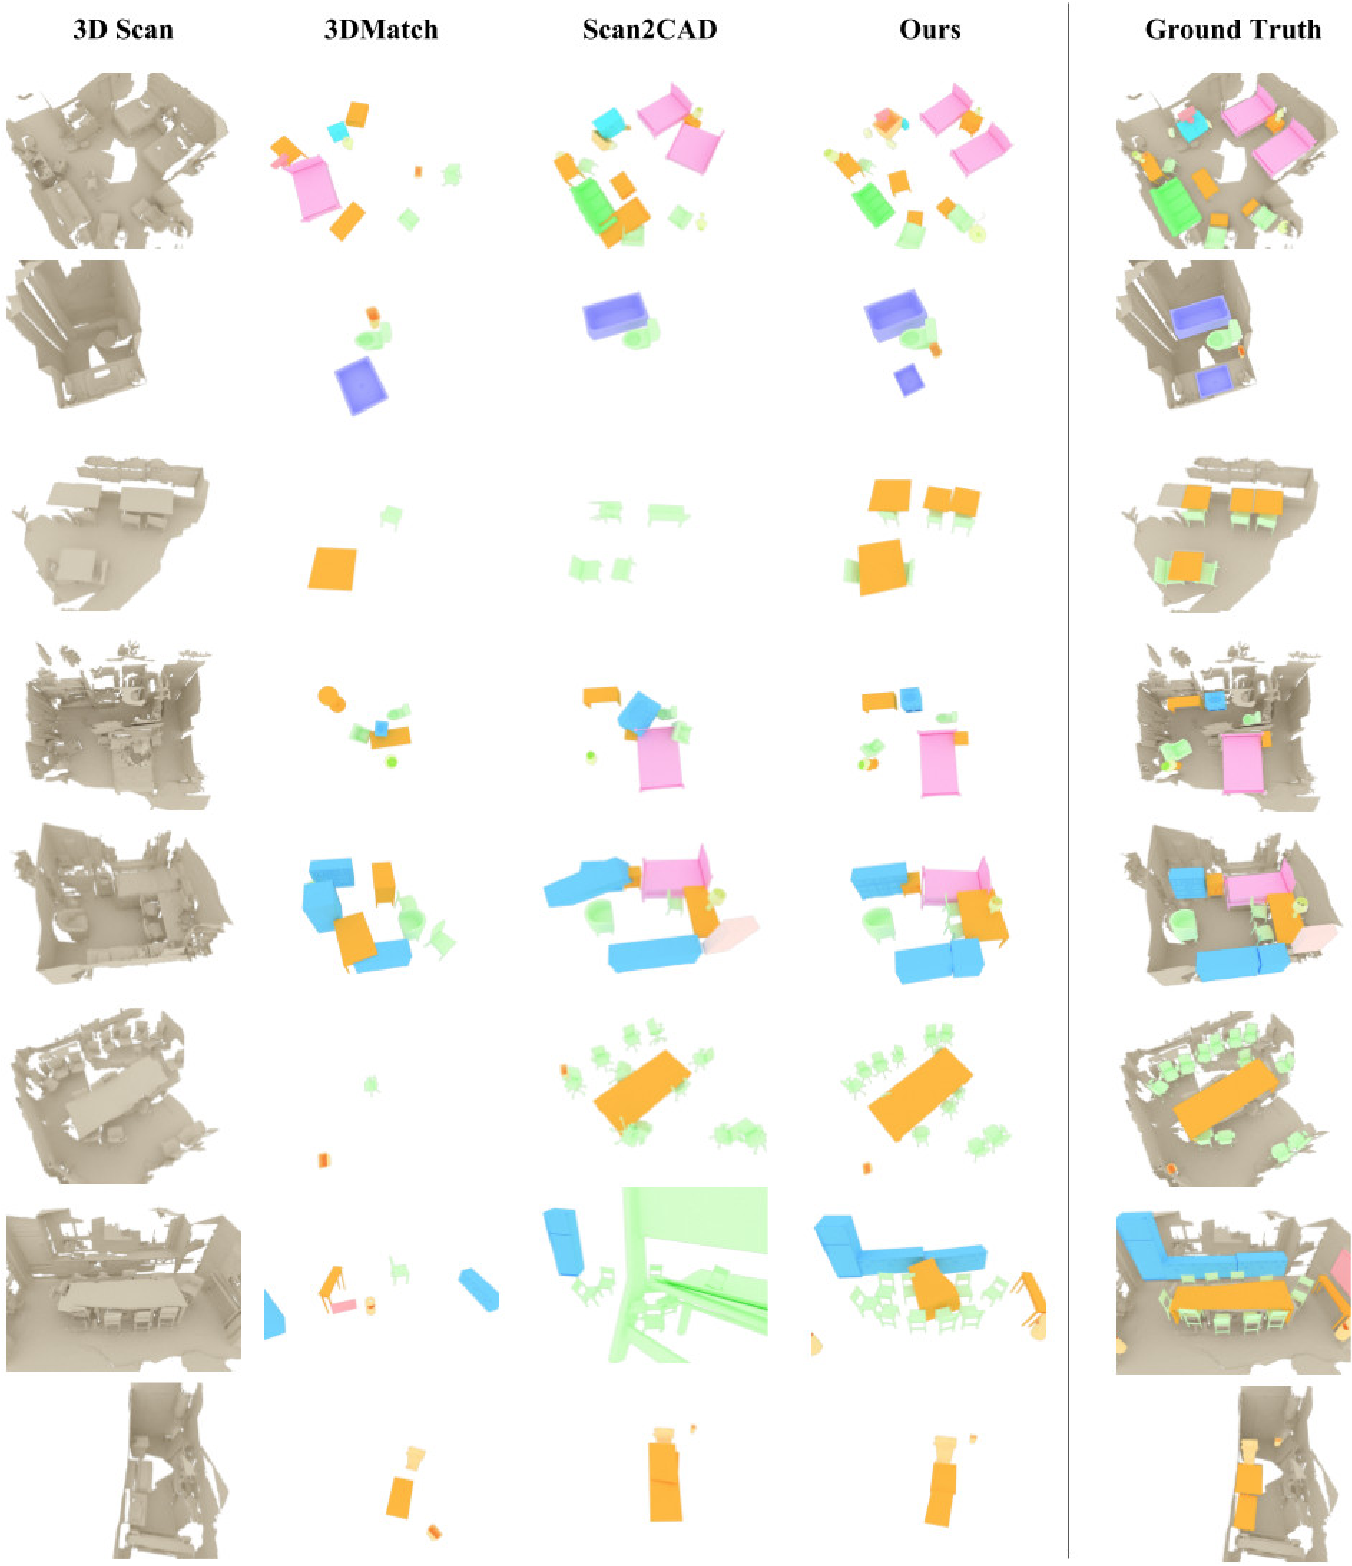 Figure 4 for End-to-End CAD Model Retrieval and 9DoF Alignment in 3D Scans